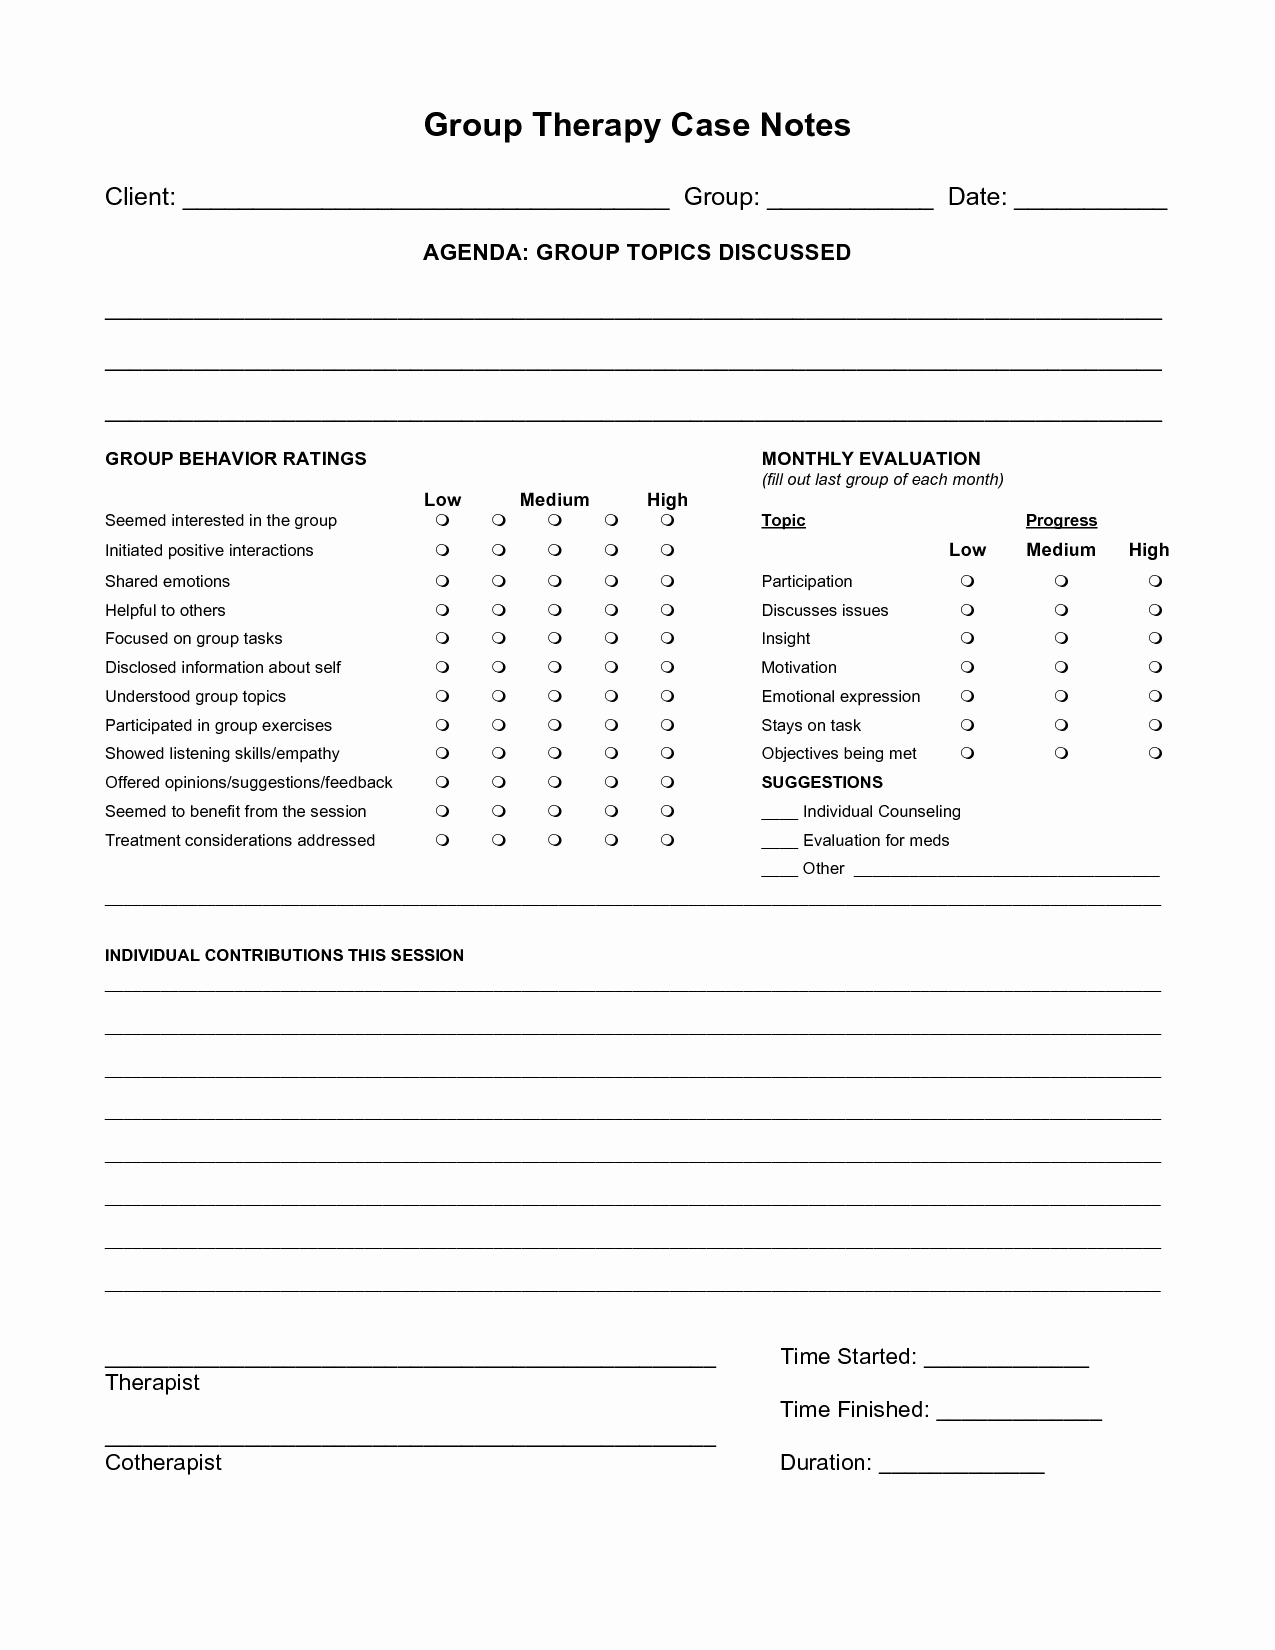 Case Note Template social Work Luxury Free Case Note Templates Group therapy Case Notes